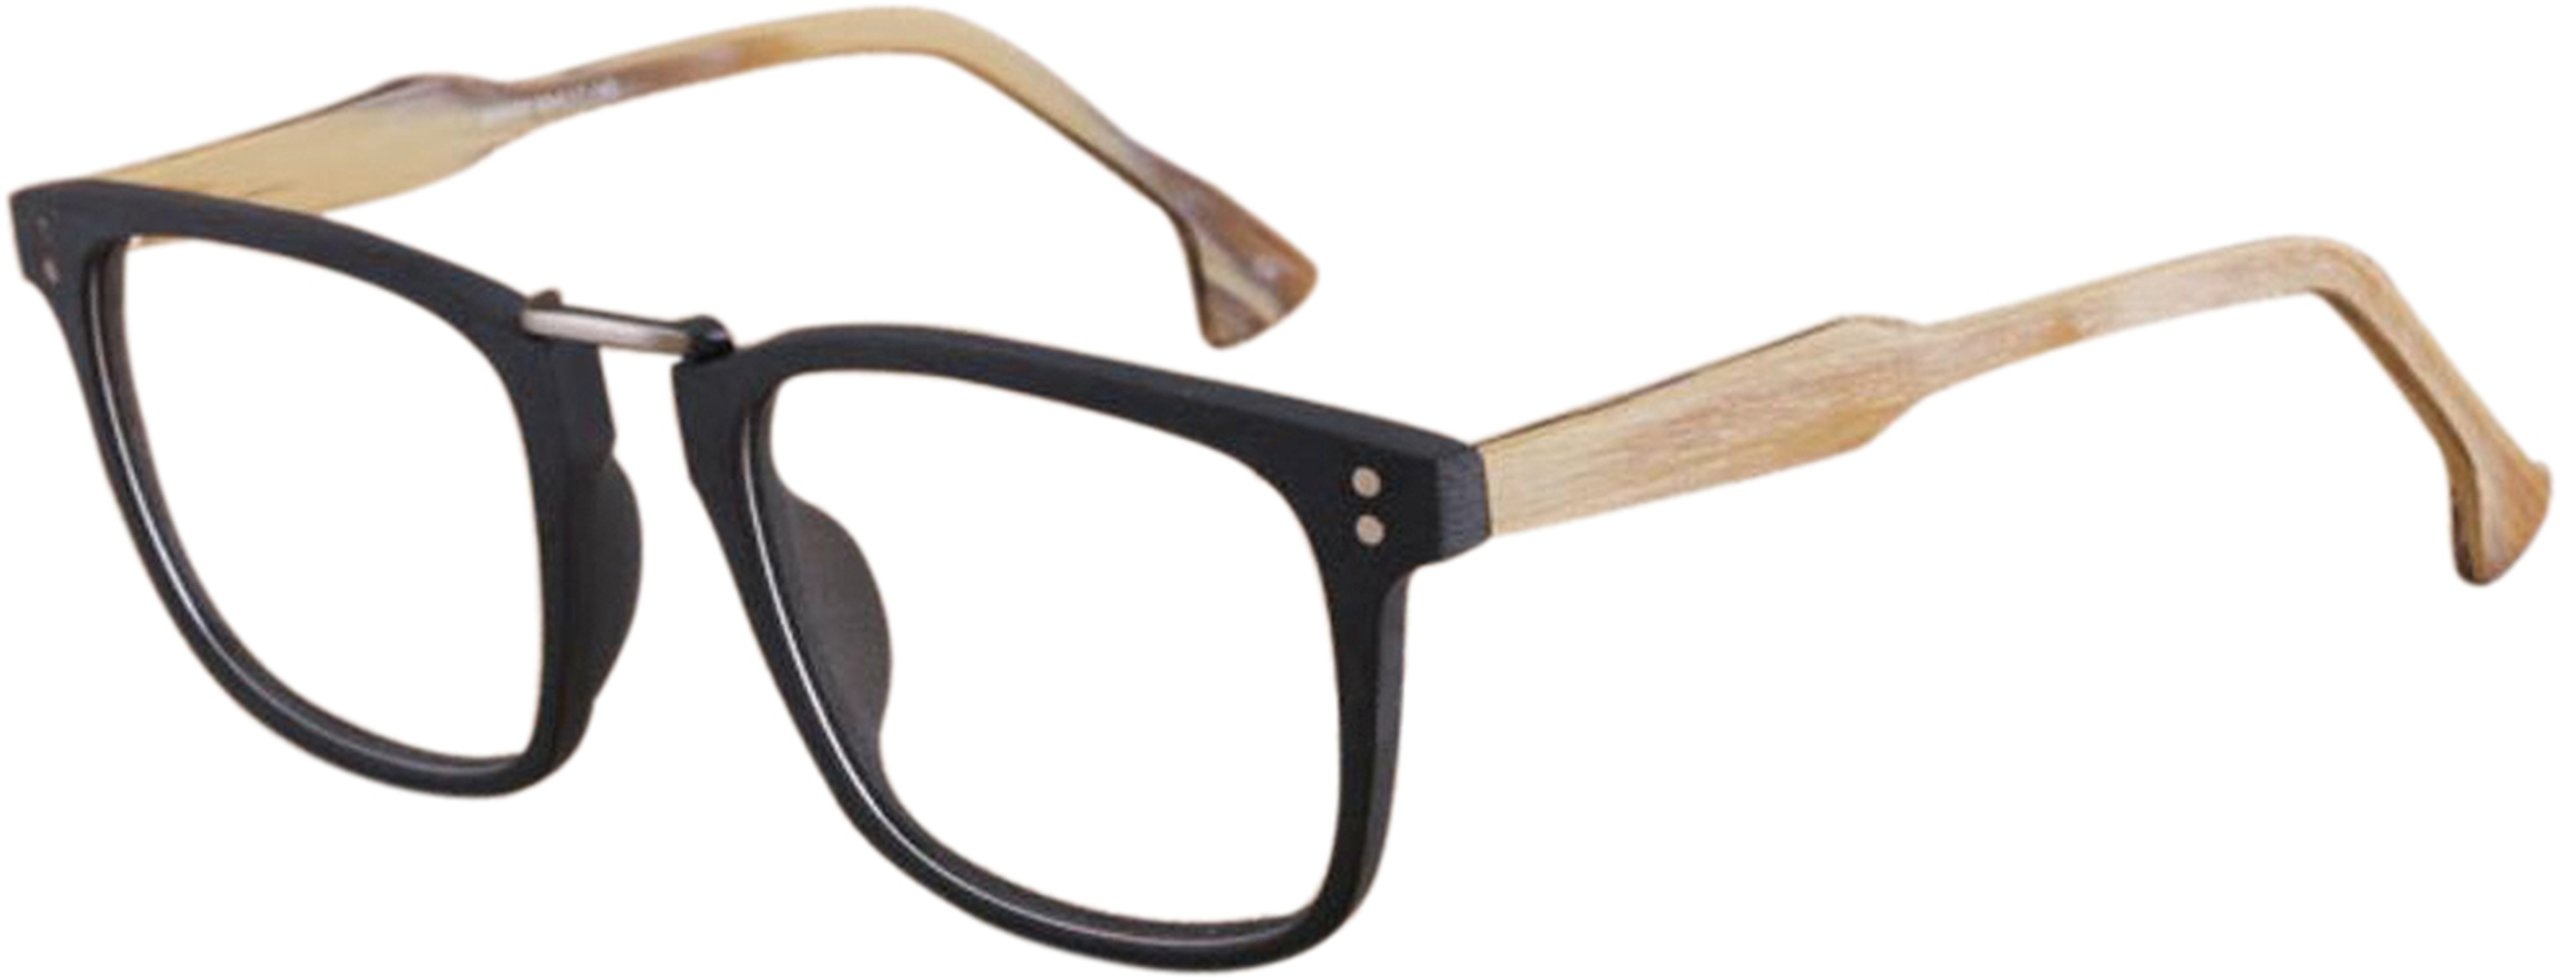 J&L Glasses Vintage Classic Full Frame Wood Grain Unisex Glasses Frame (Black/Brown, clear) by J&L Glasses